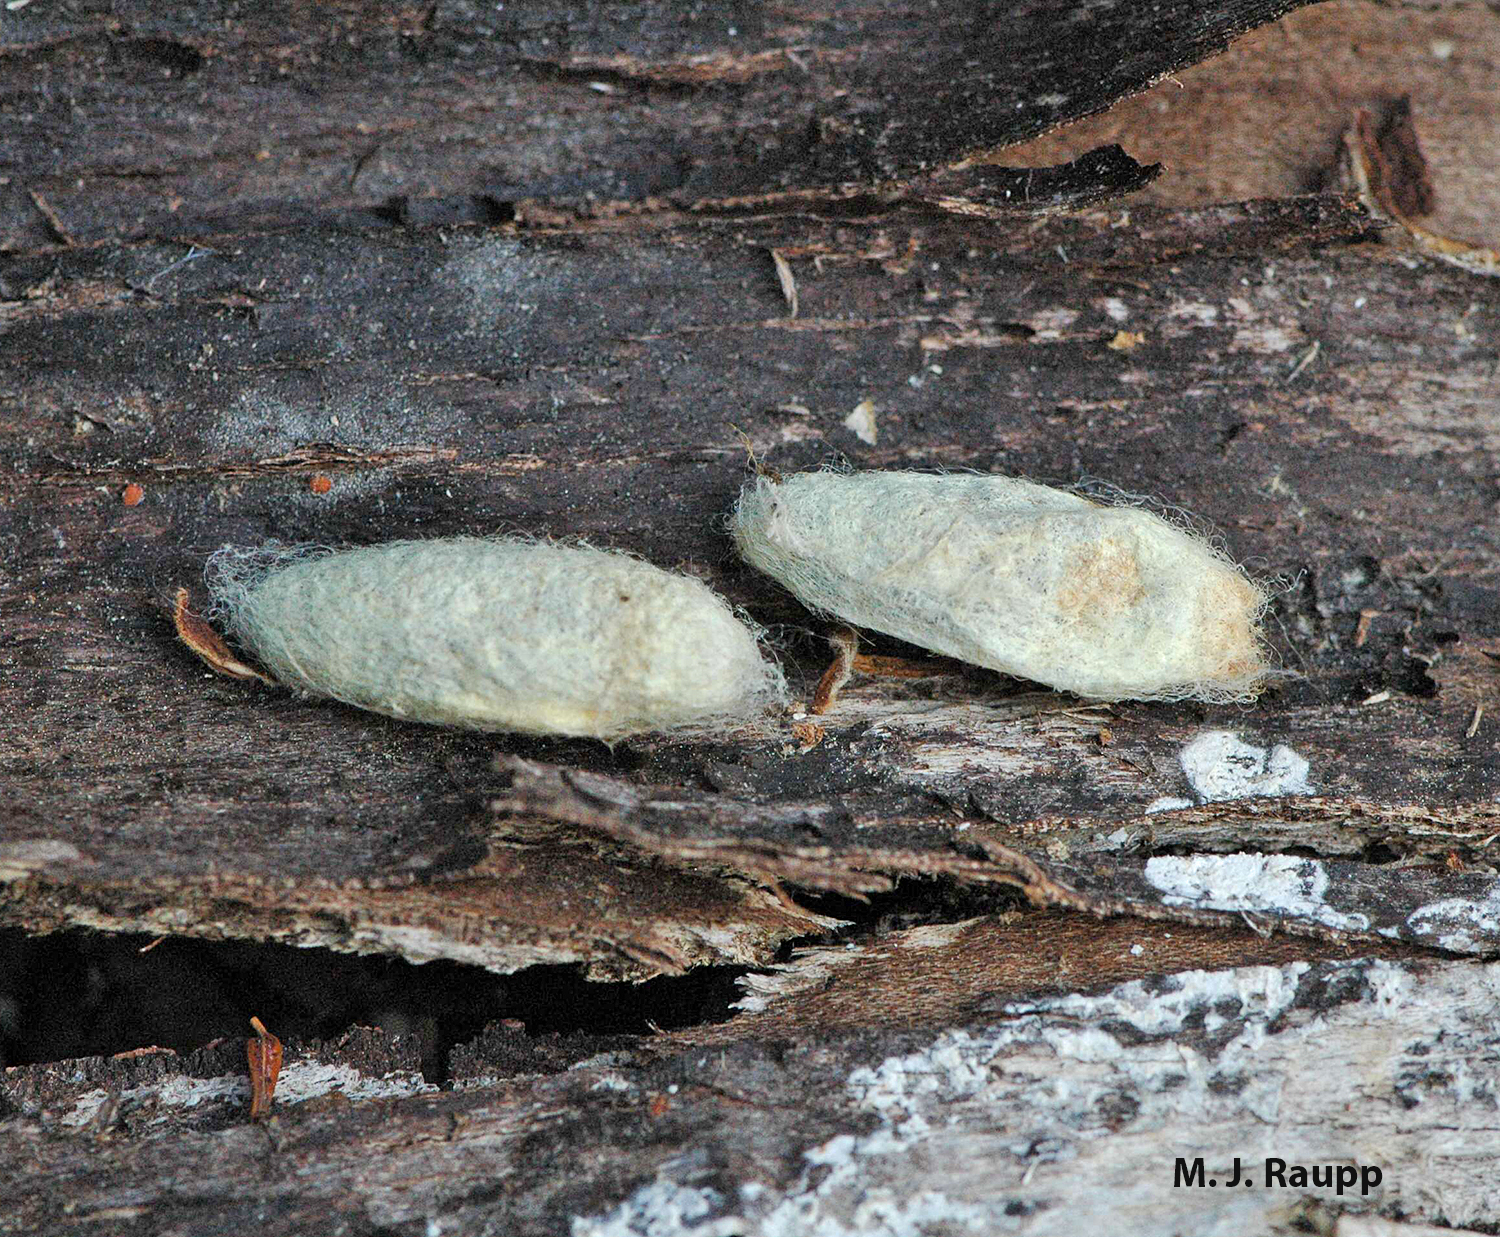 When larval feeding is complete, mature caterpillars wander and find protected locations such as beneath loose bark to spin silken cocoons.